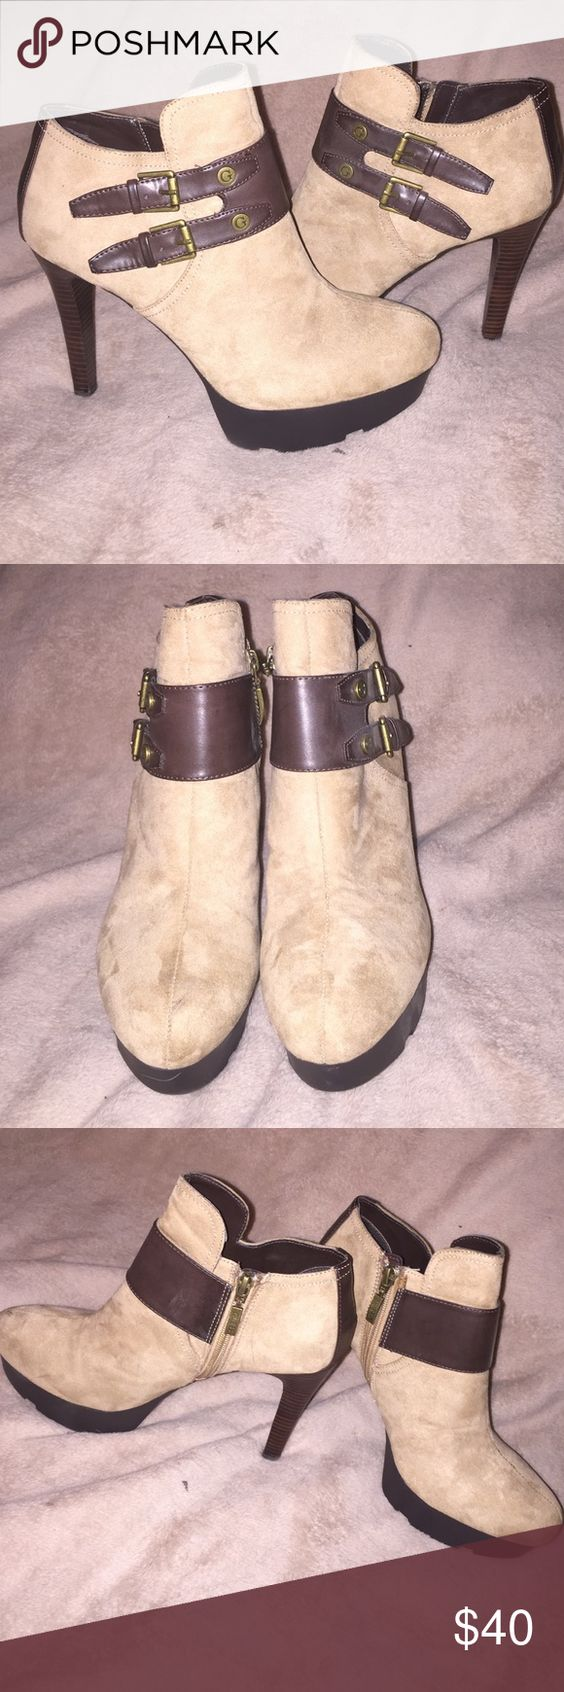 Guess Ankle Boot Guess Ankle Boot. Brown & Tan. Barely worn. Heel Height 5 inches Guess Shoes Ankle Boots & Booties